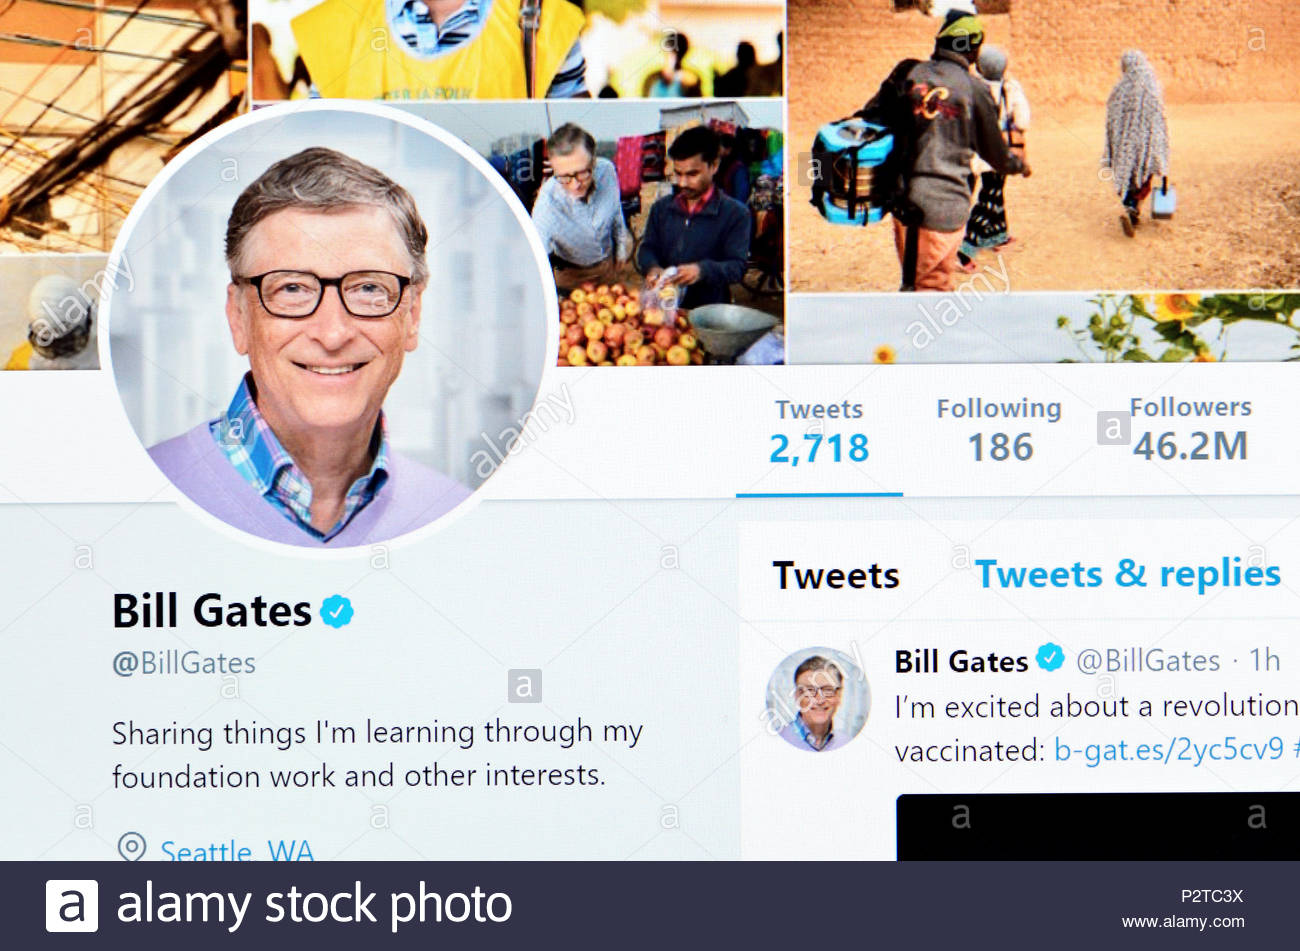 Bill Gates official Twitter page (2018) - Stock Image